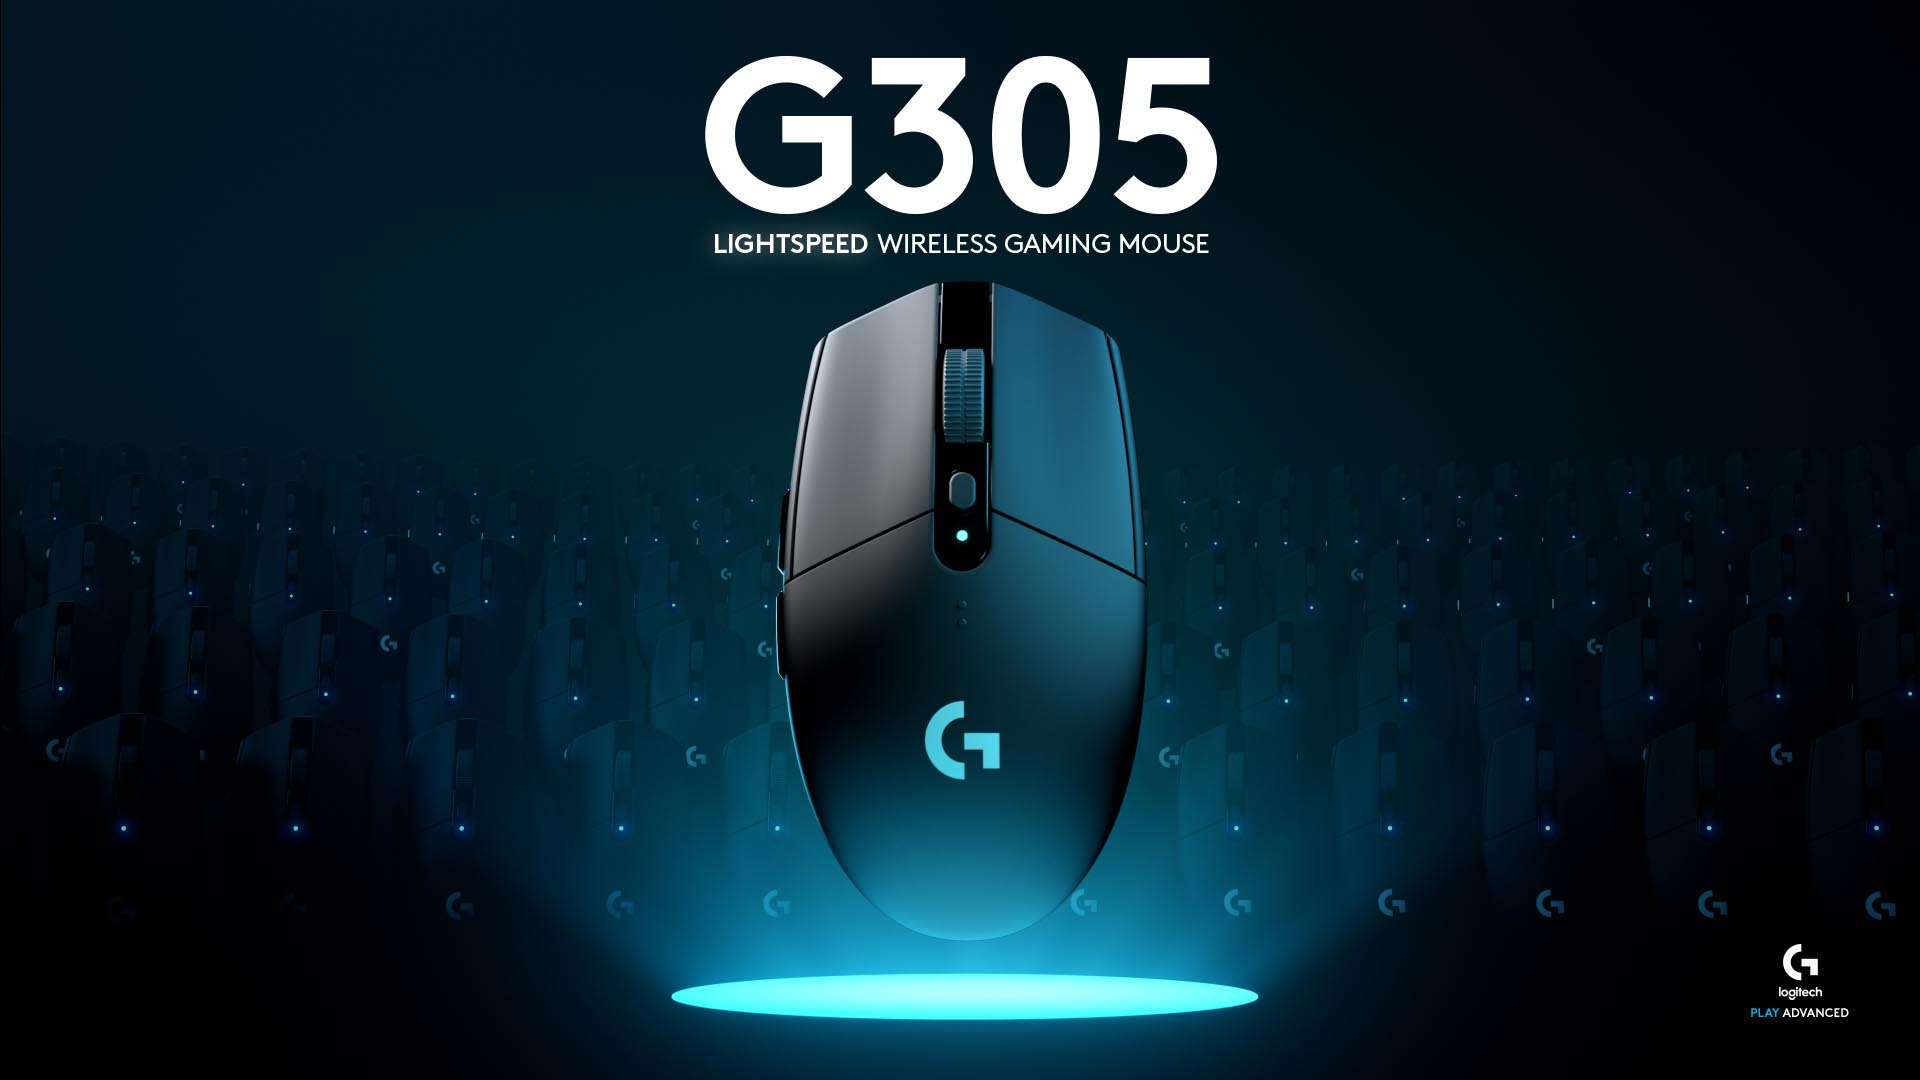 Logitech G305 Lightspeed: miglior mouse wireless economico